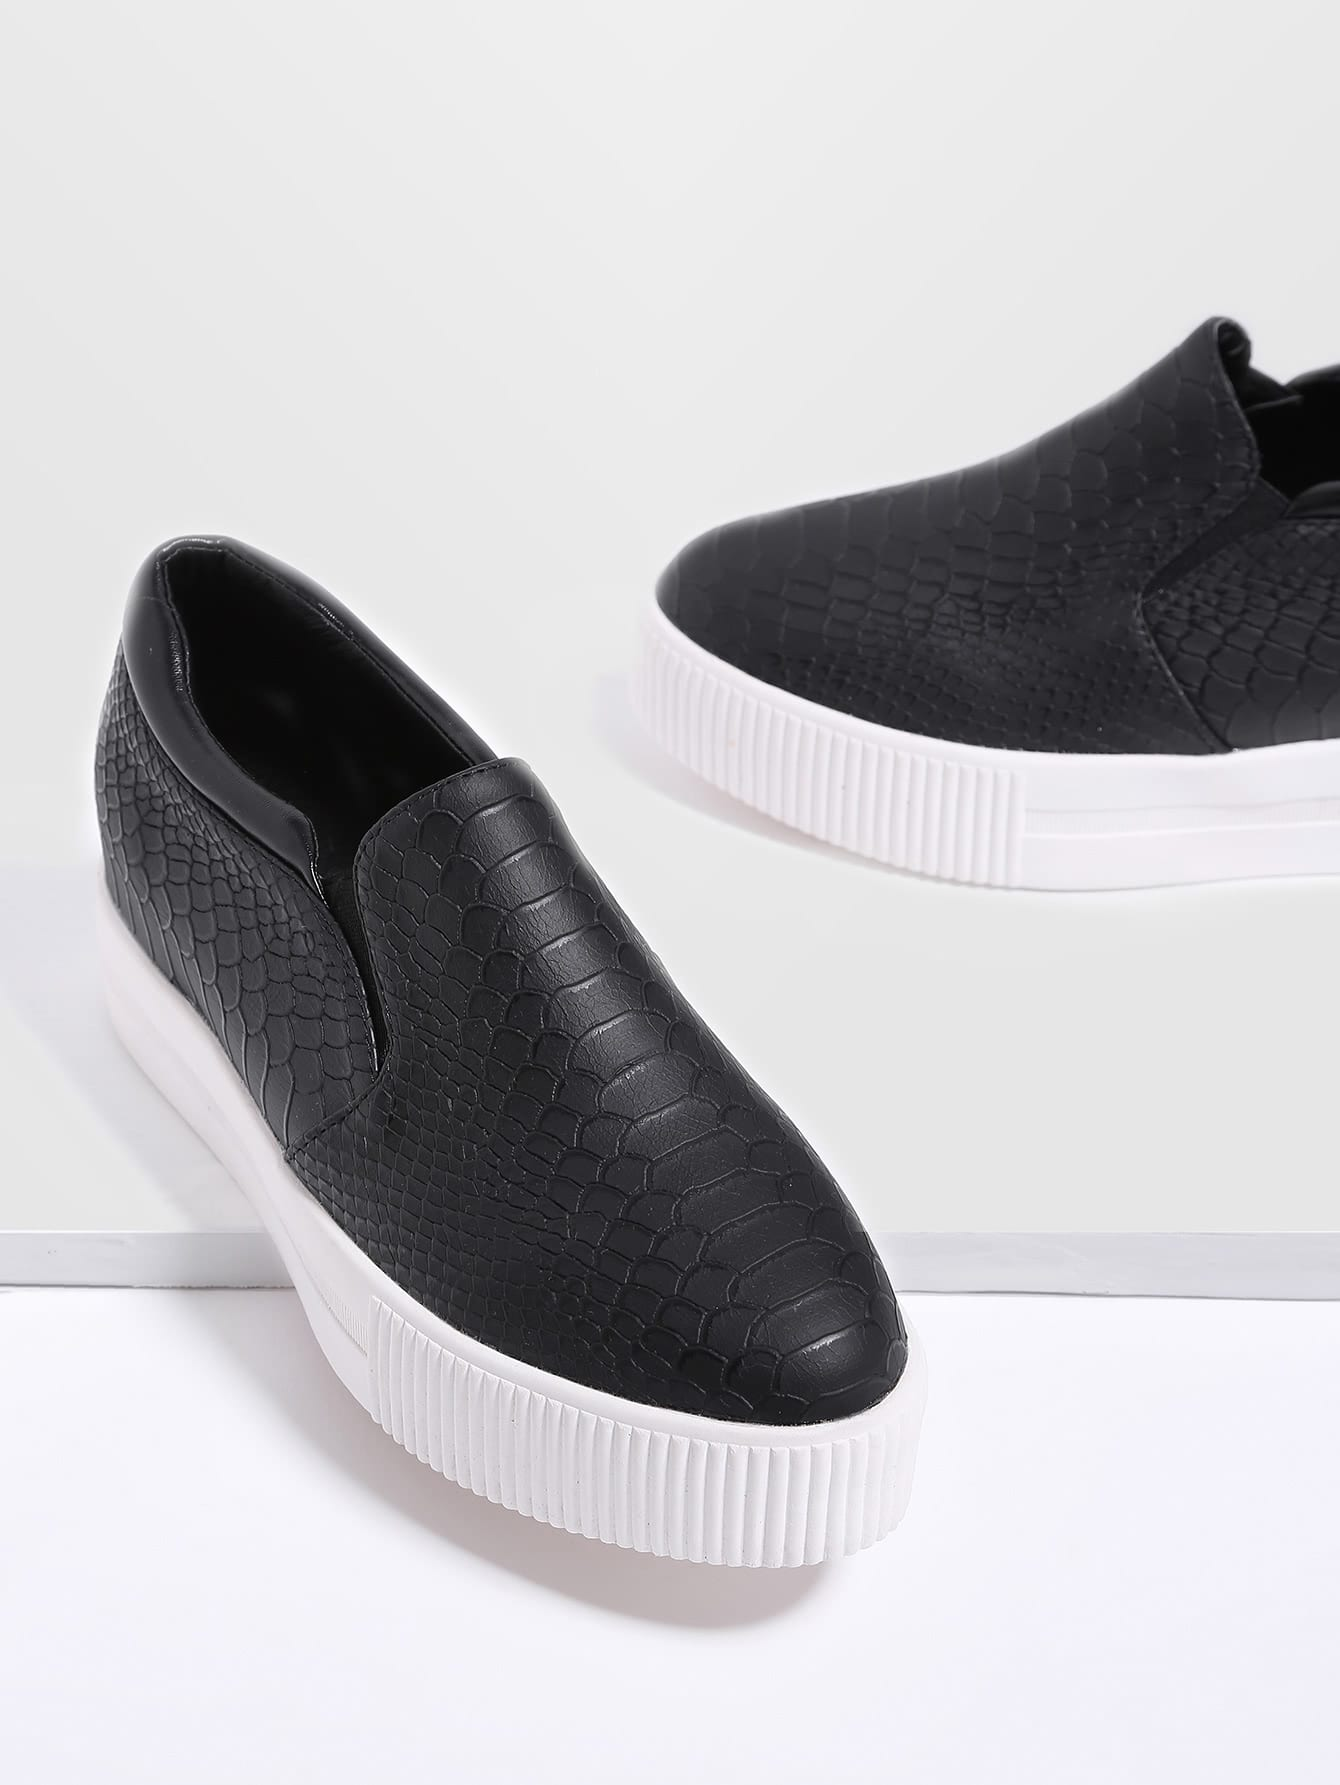 Image of Black Crocodile Pattern Flatform Sneakers